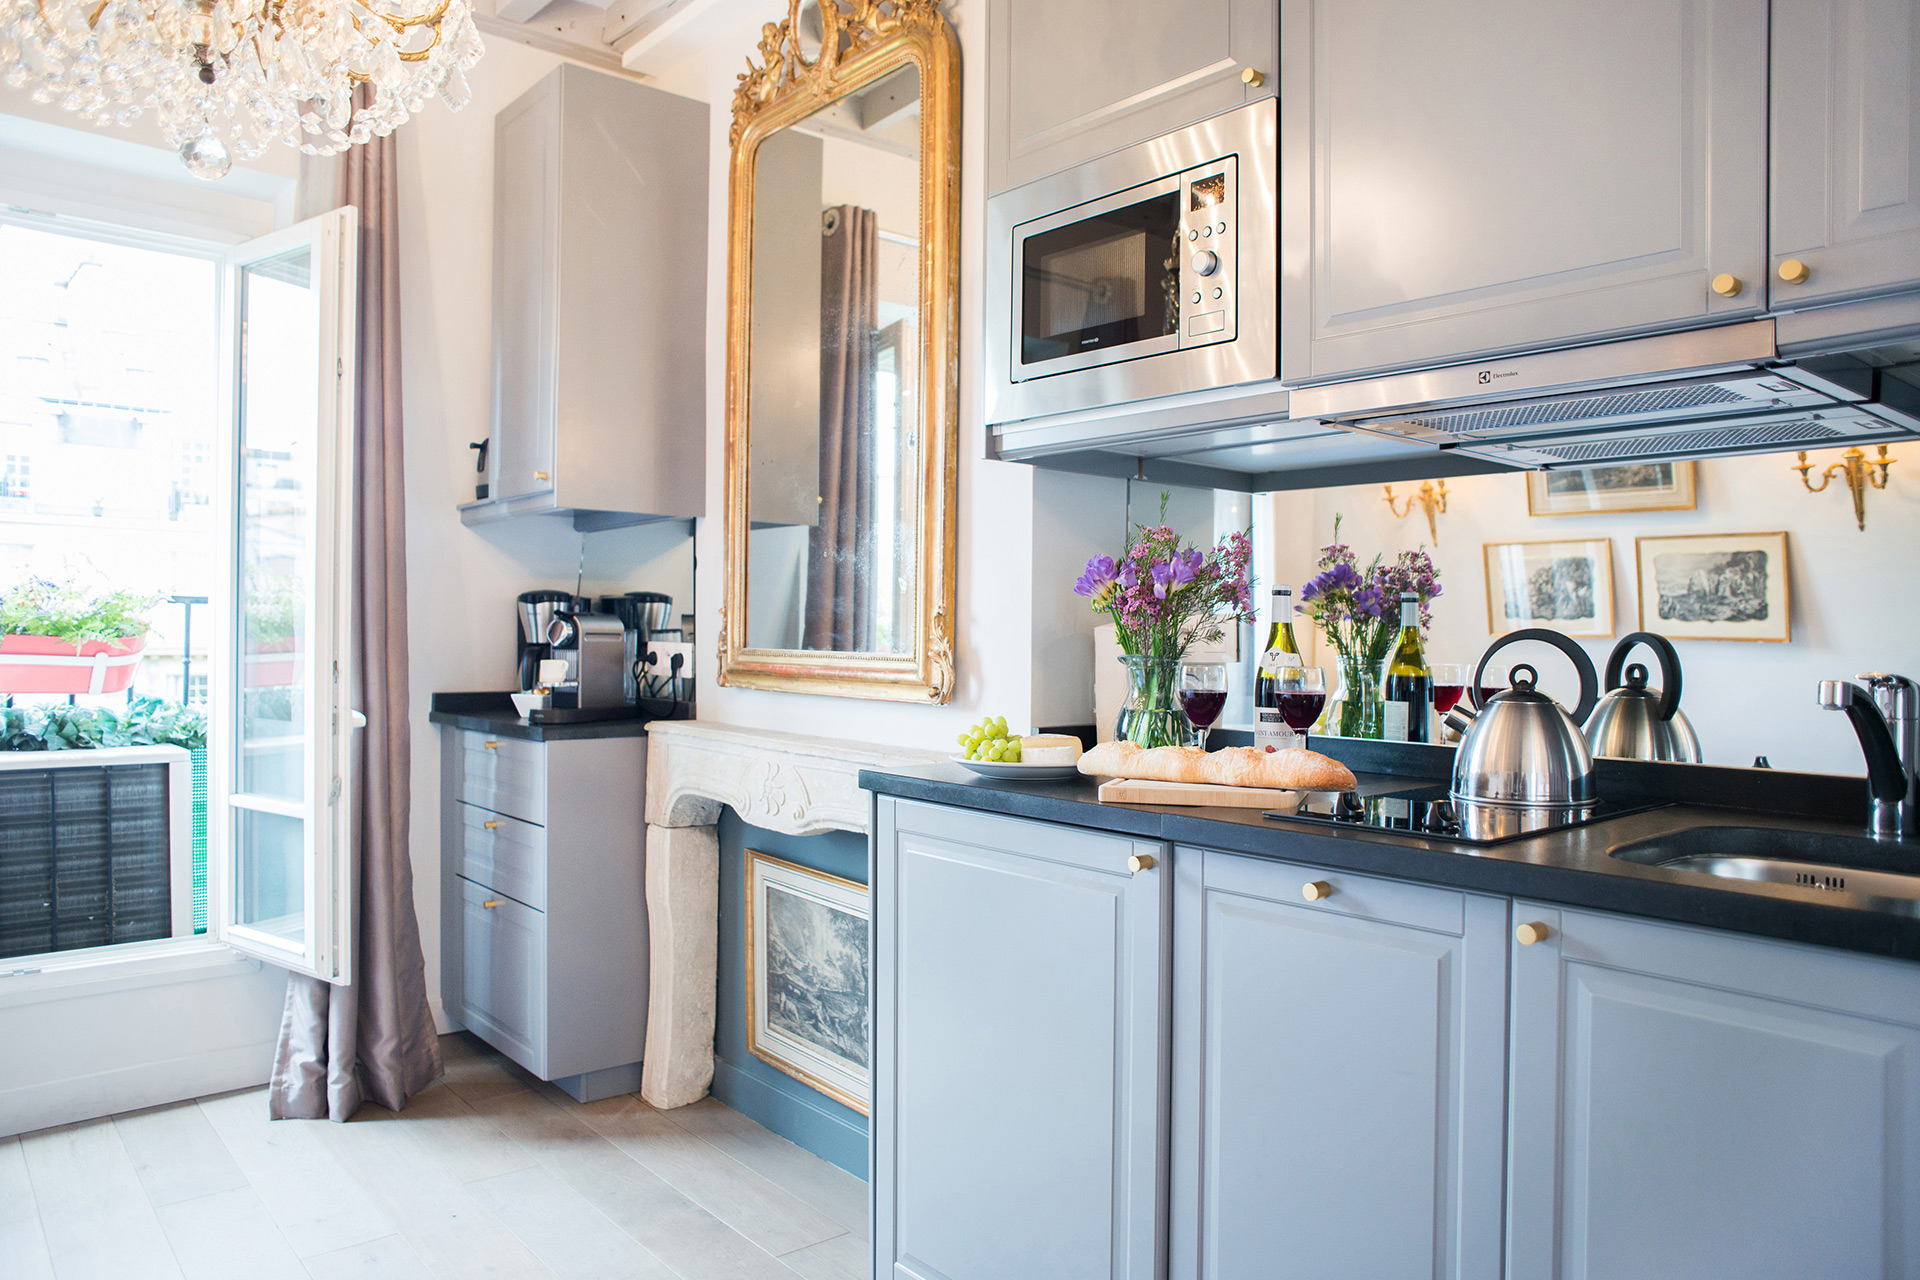 Fully remodeled kitchen with decorative fireplace mantle in the Cremant vacation rental